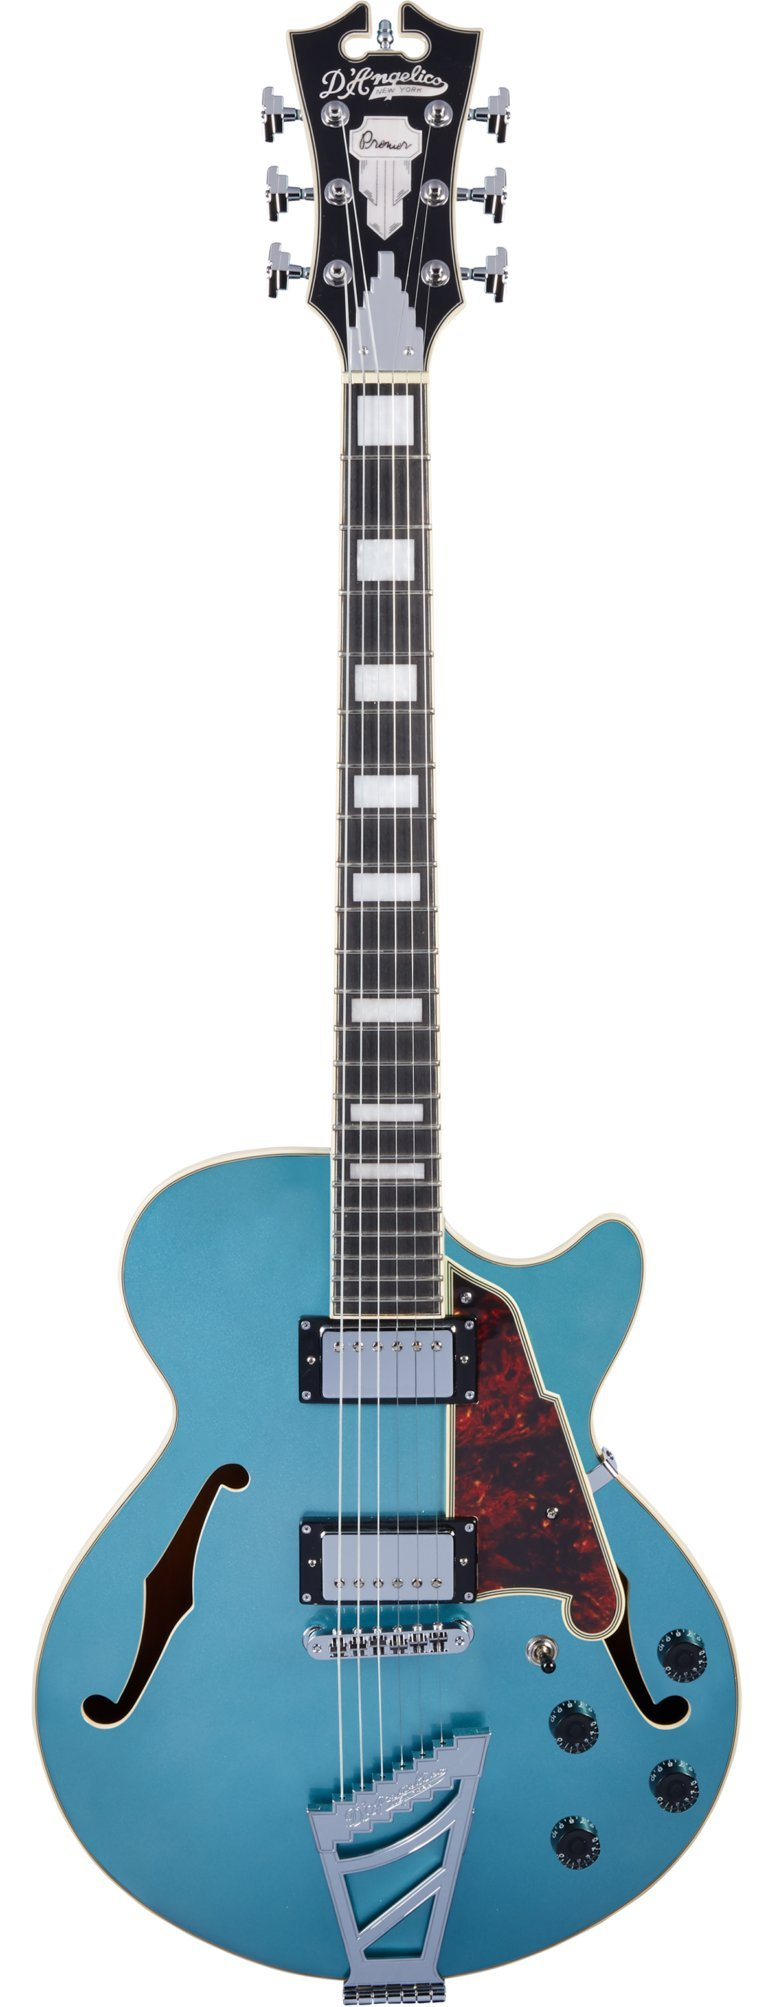 Cheap D Angelico Premier SS Semi-Hollow Electric Guitar w/ Stairstep Tailpiece - Ocean Turquoise Black Friday & Cyber Monday 2019